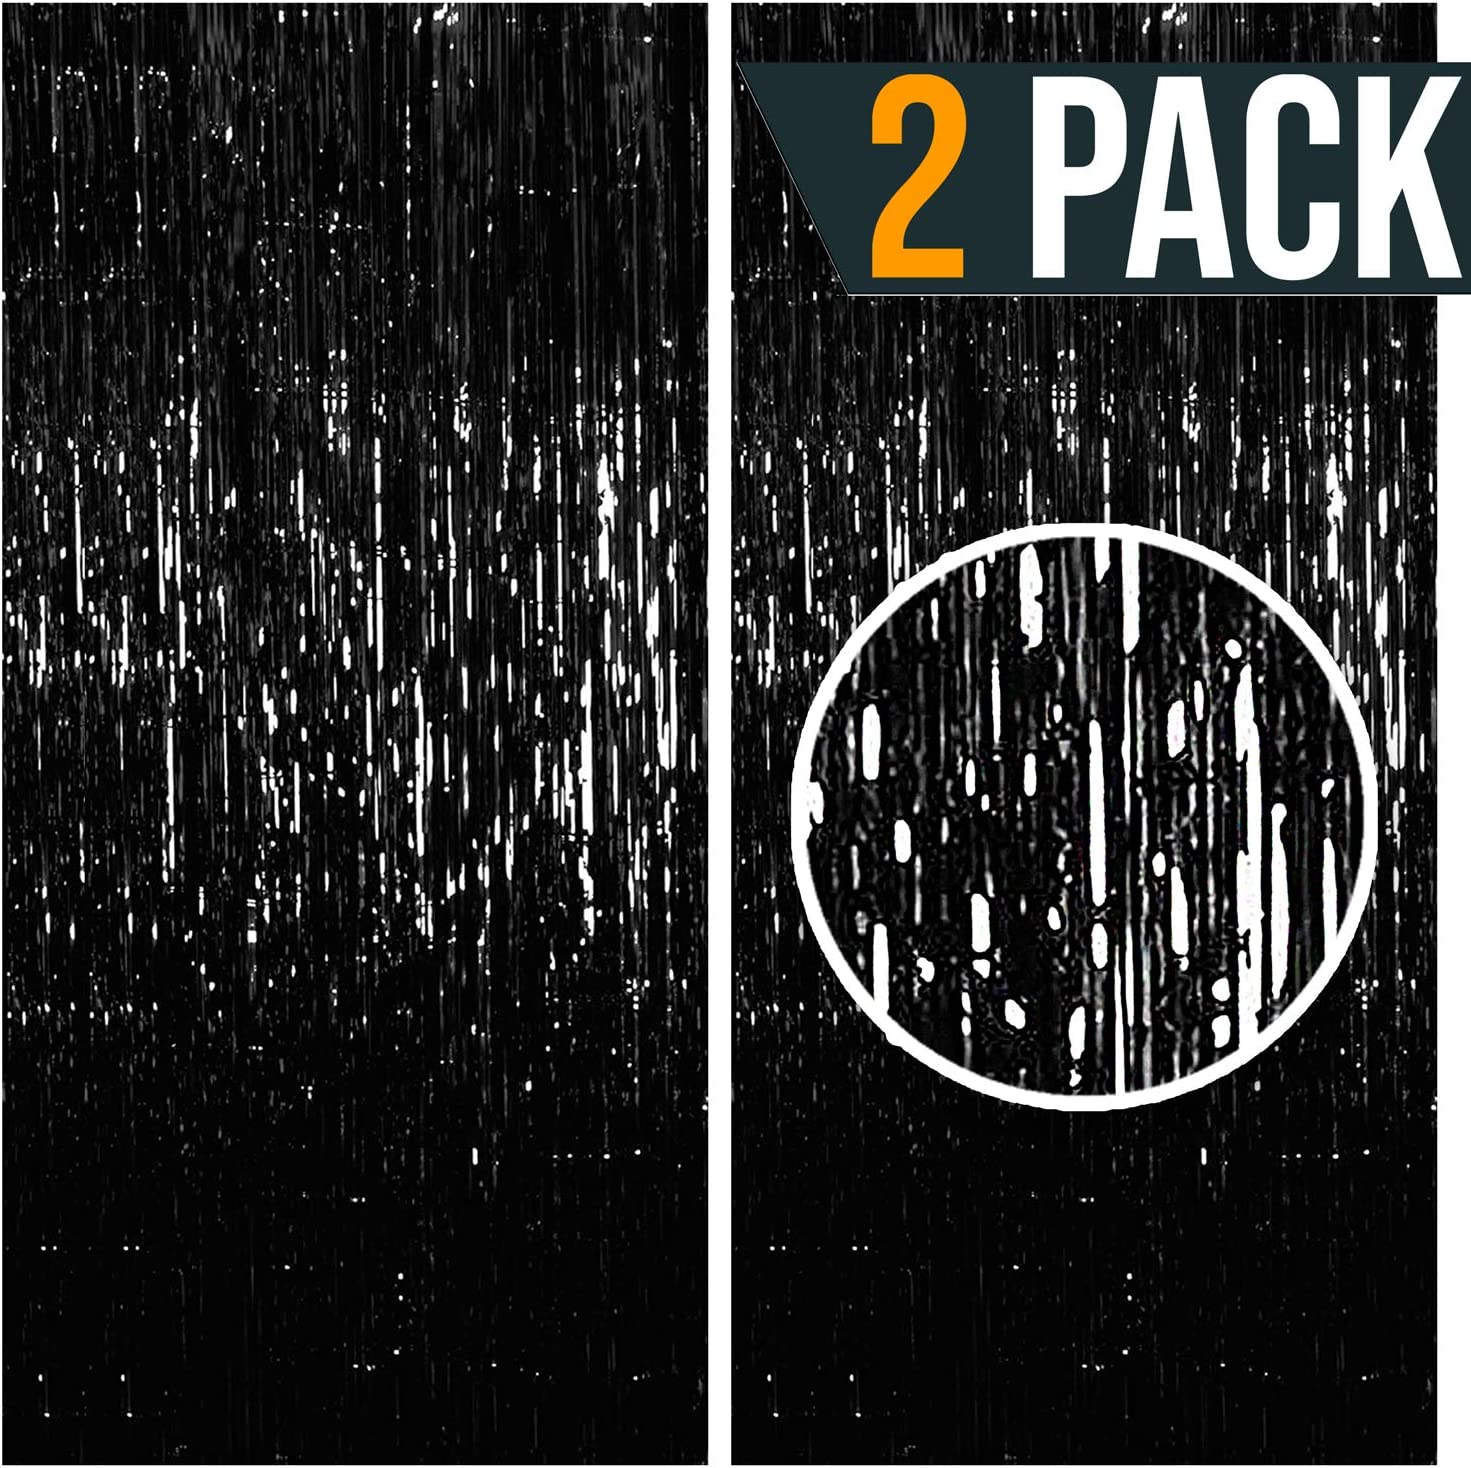 3.25 x 6.7 ft (2 Pack) Tinsel Foil Fringe Curtains Party Decorations Photo Booth Backdrop   Wedding Décor Baby Shower Graduations Valentine Day Bachelorette Birthday Decorations (Black)